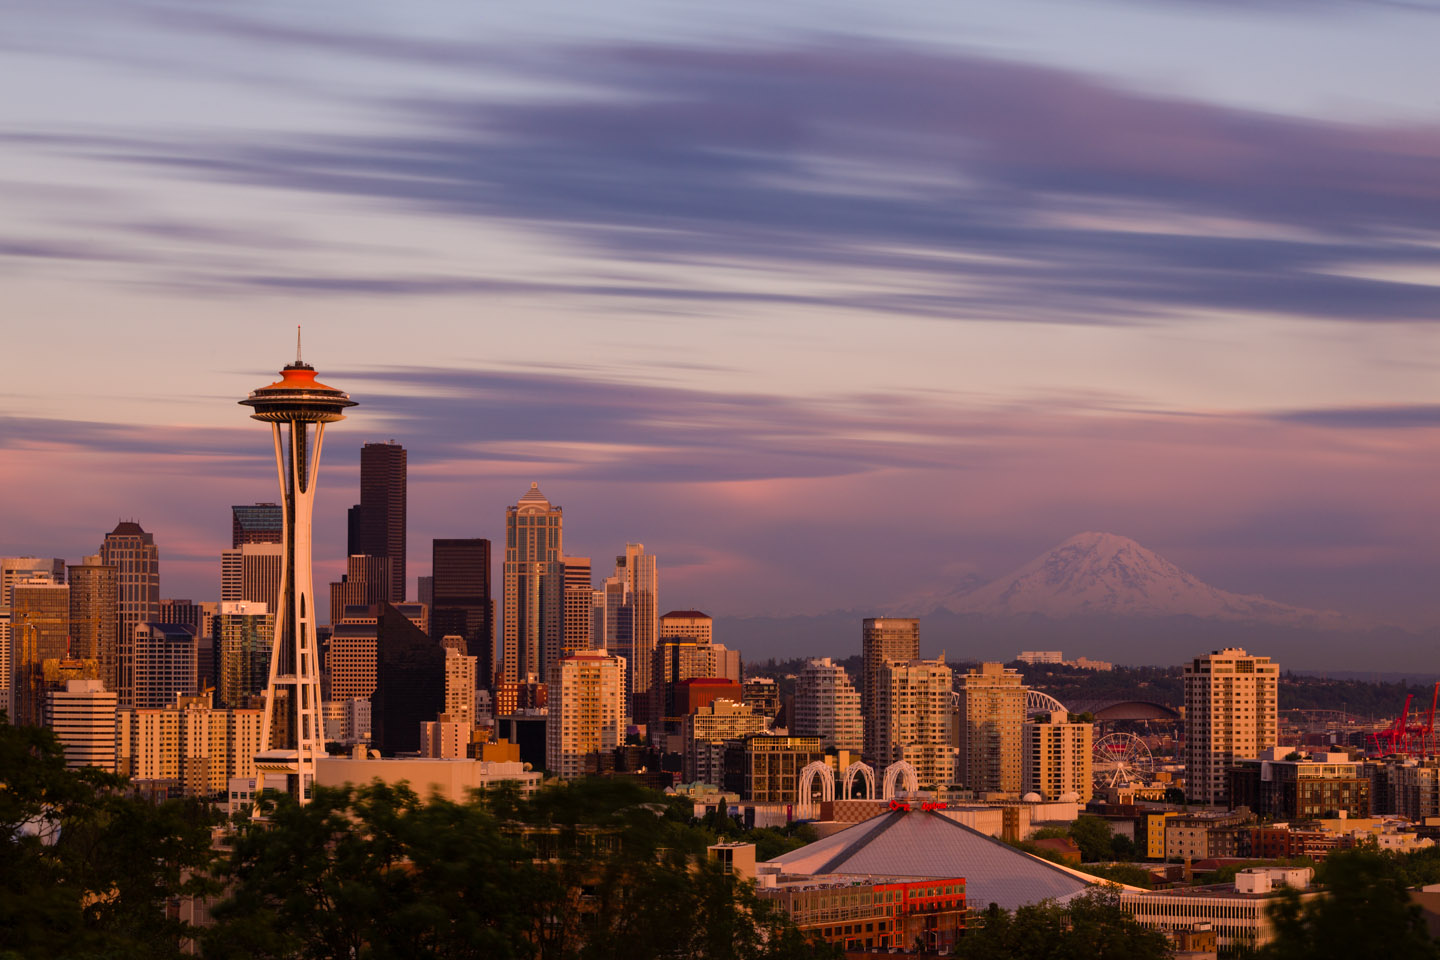 Seattle Space Needle during sunset